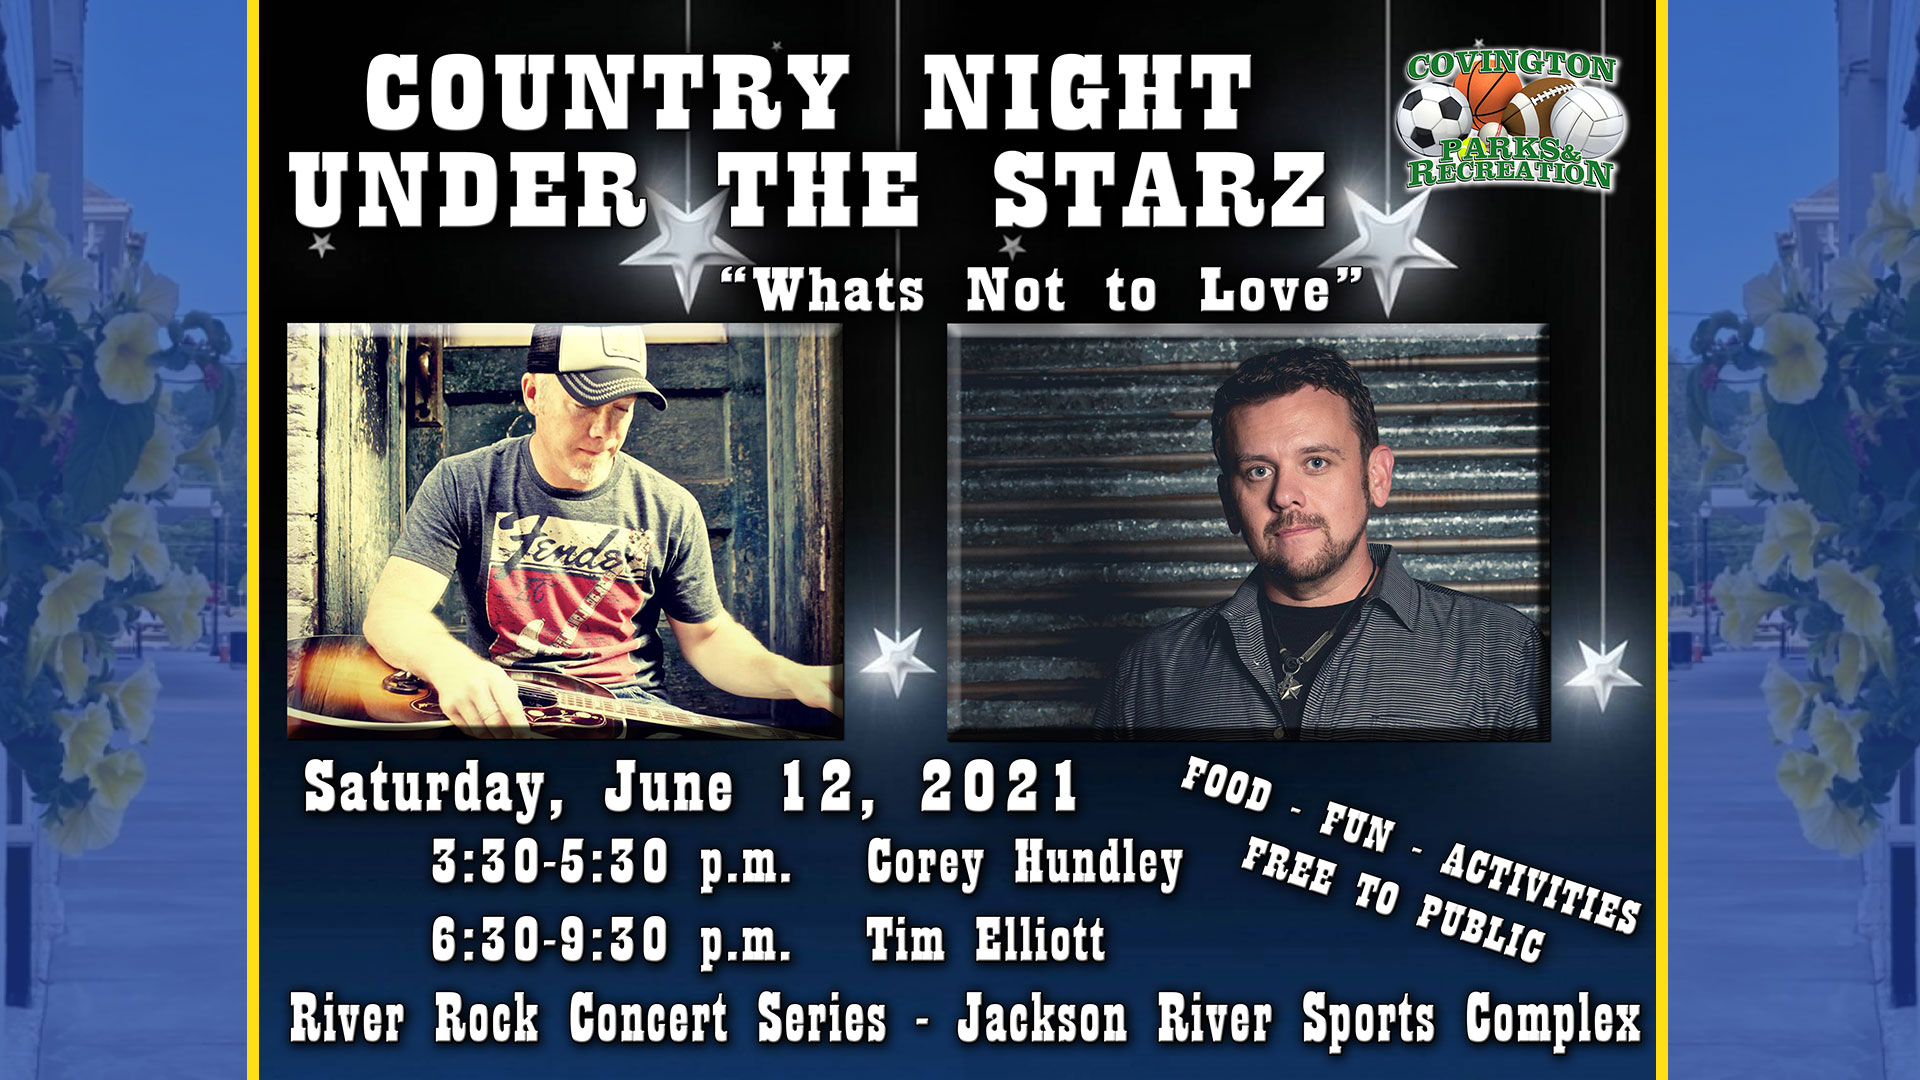 Country Night Under The Starz June 12